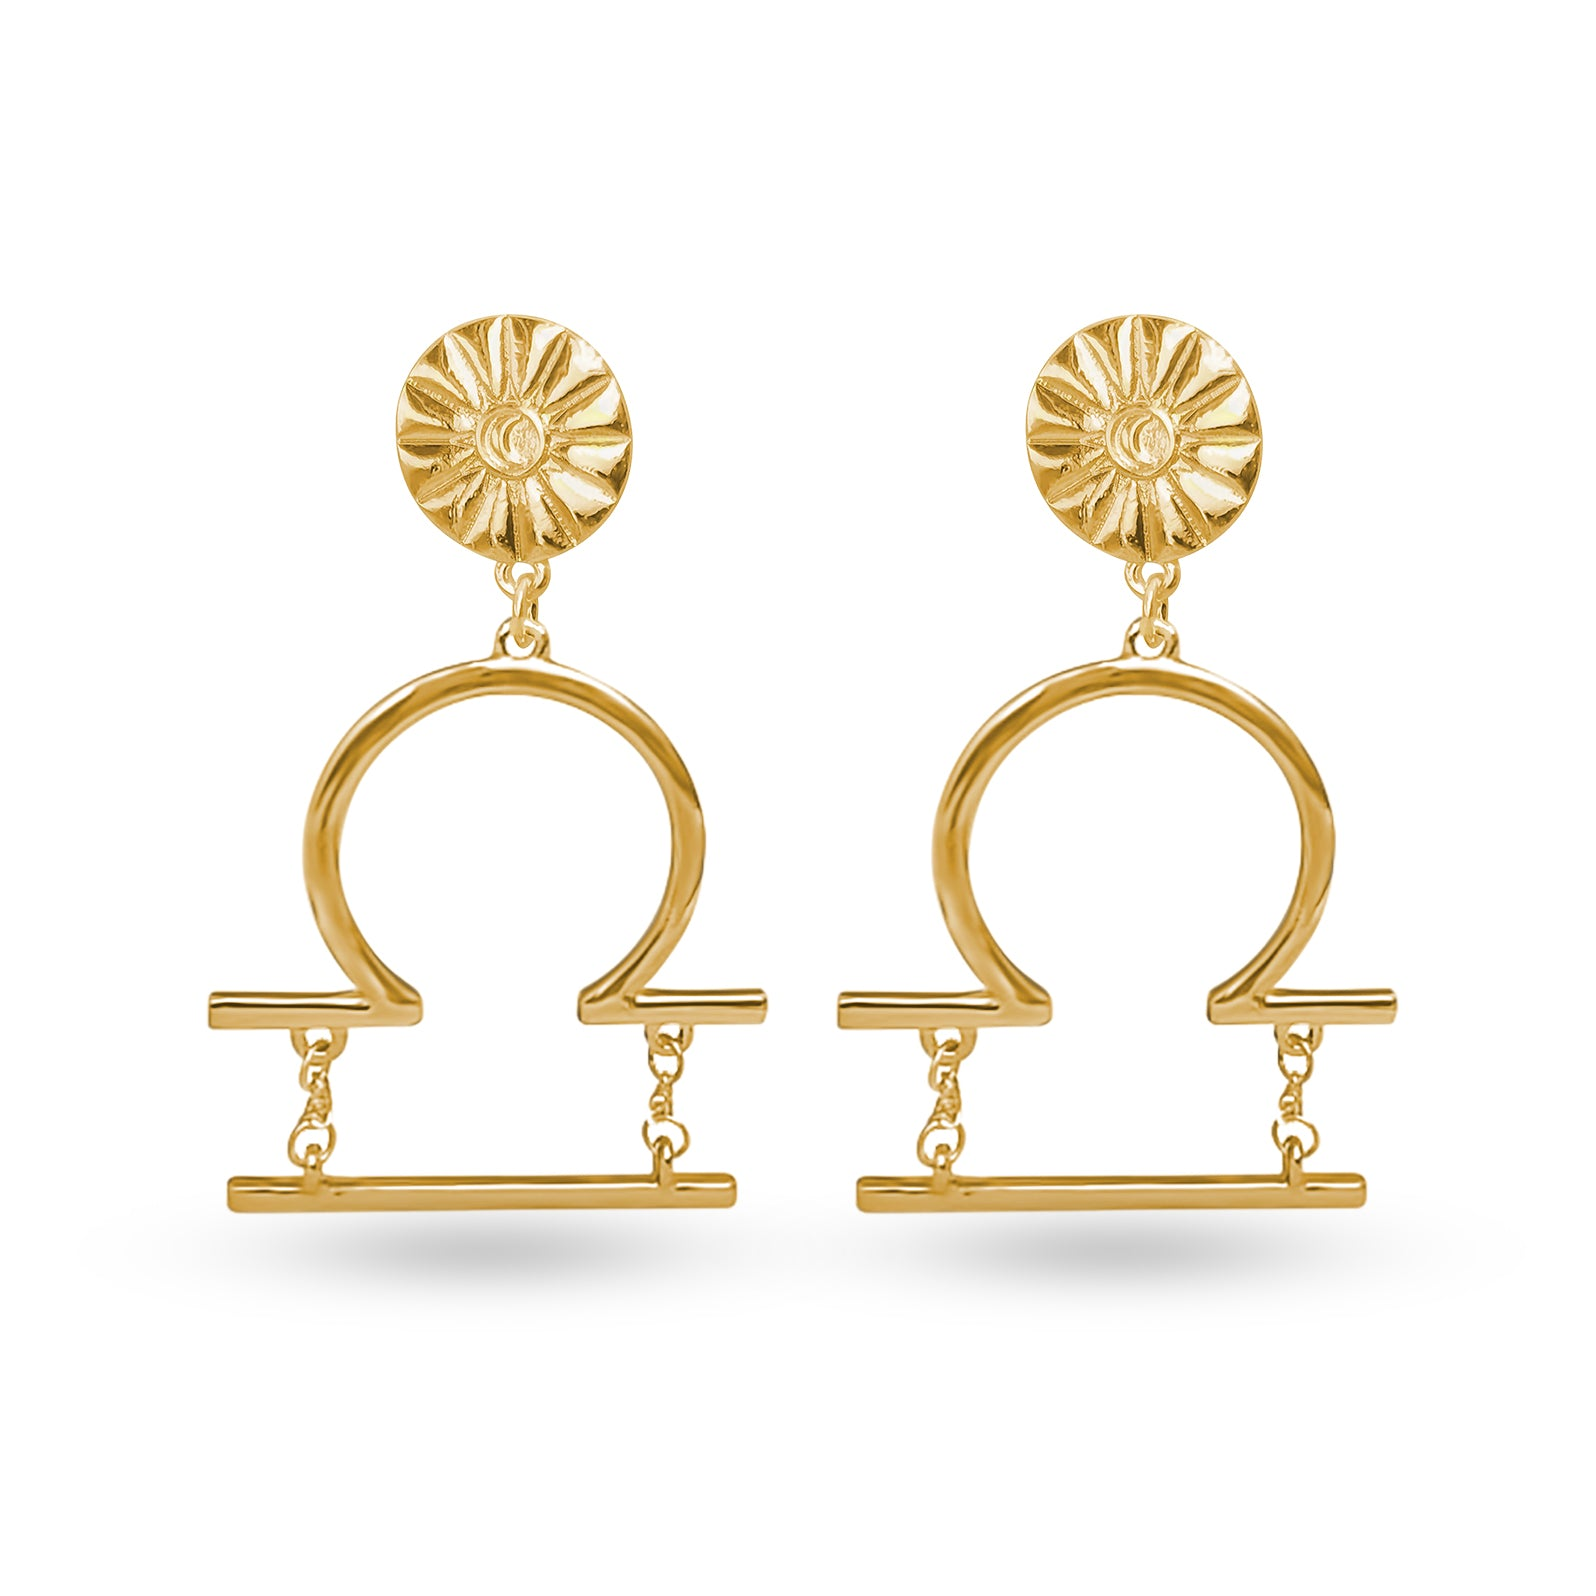 Libra XL earrings